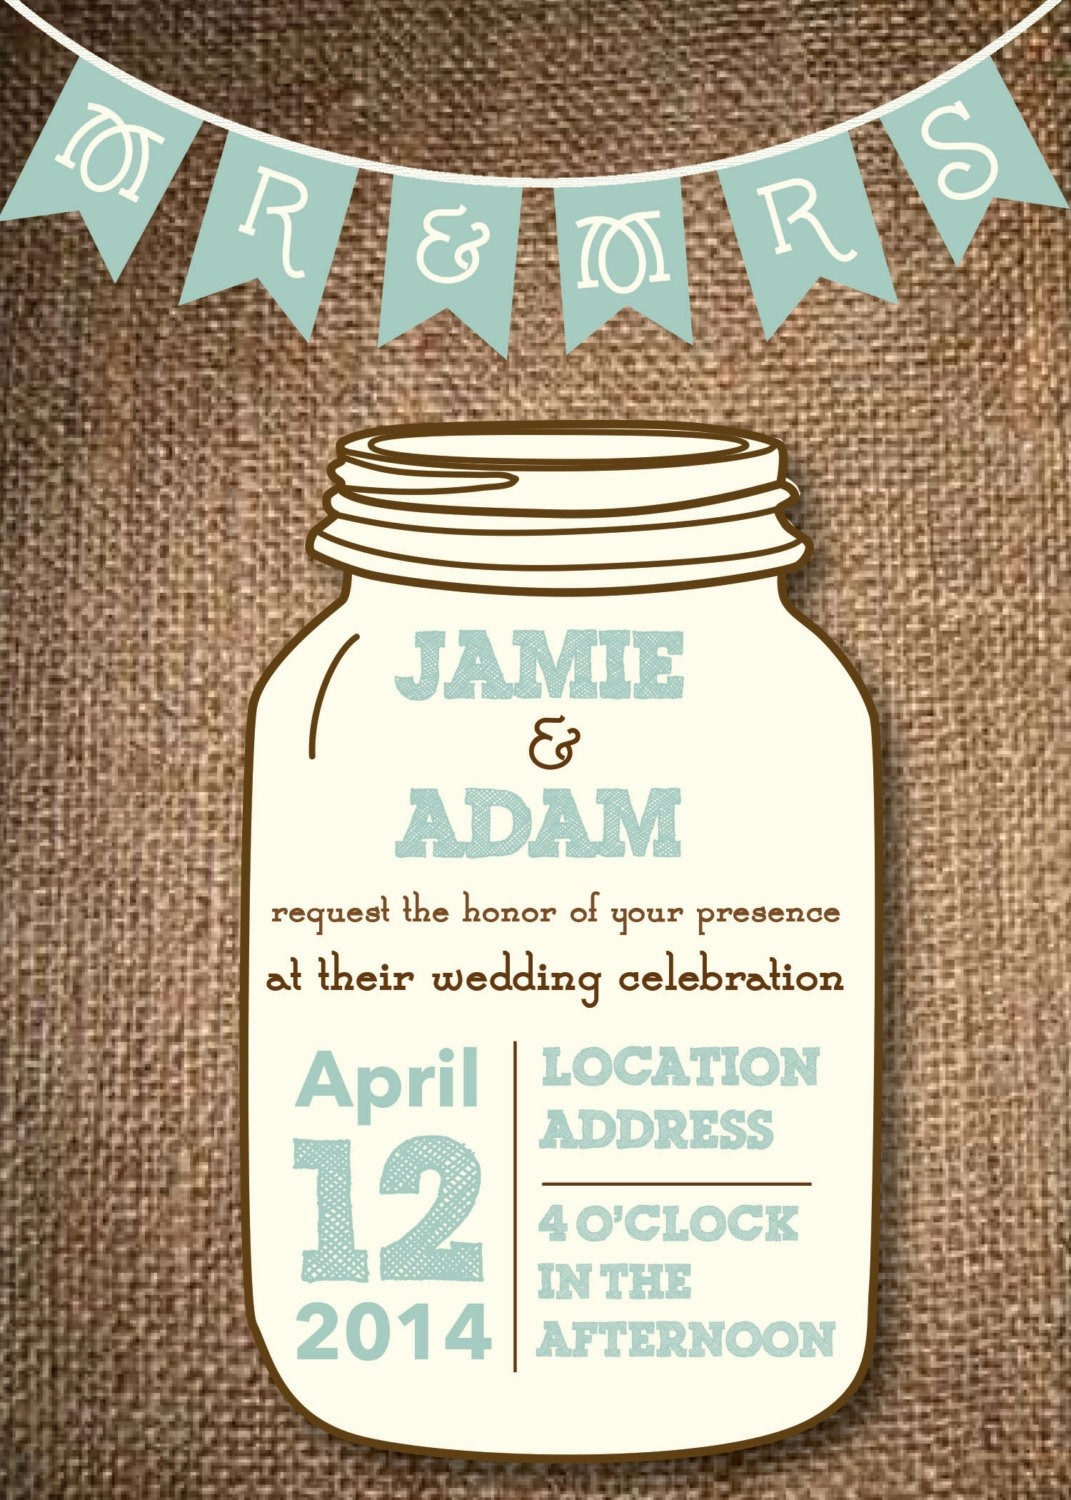 006 Mason Jar Invitation Template Ideas Free Templates New Stunning - Free Mason Jar Wedding Invitation Printable Templates